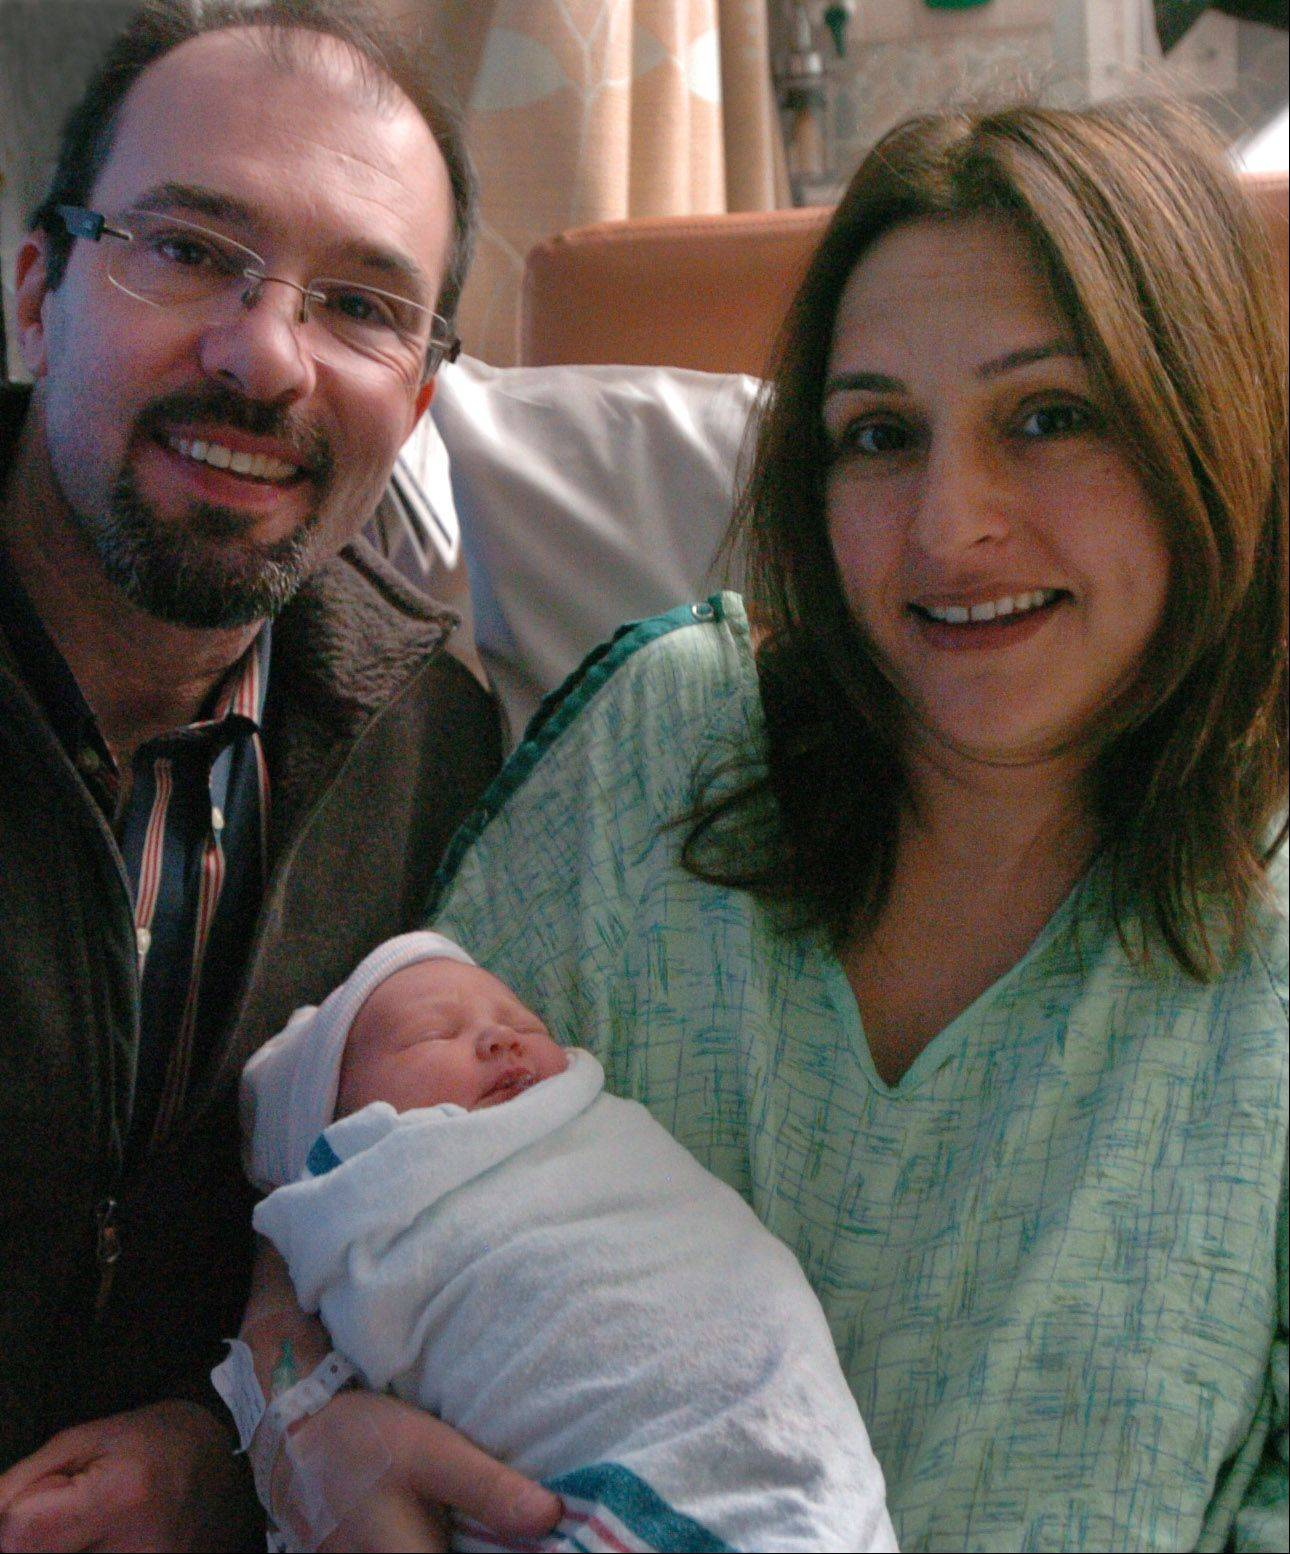 Hope Labbe, who was born at 12:13 a.m. Tuesday as the first baby in Northwest Cook County, rests with mother and father Fidan and Sean Labbe at St. Alexius Medical Center in Hoffman Estates.